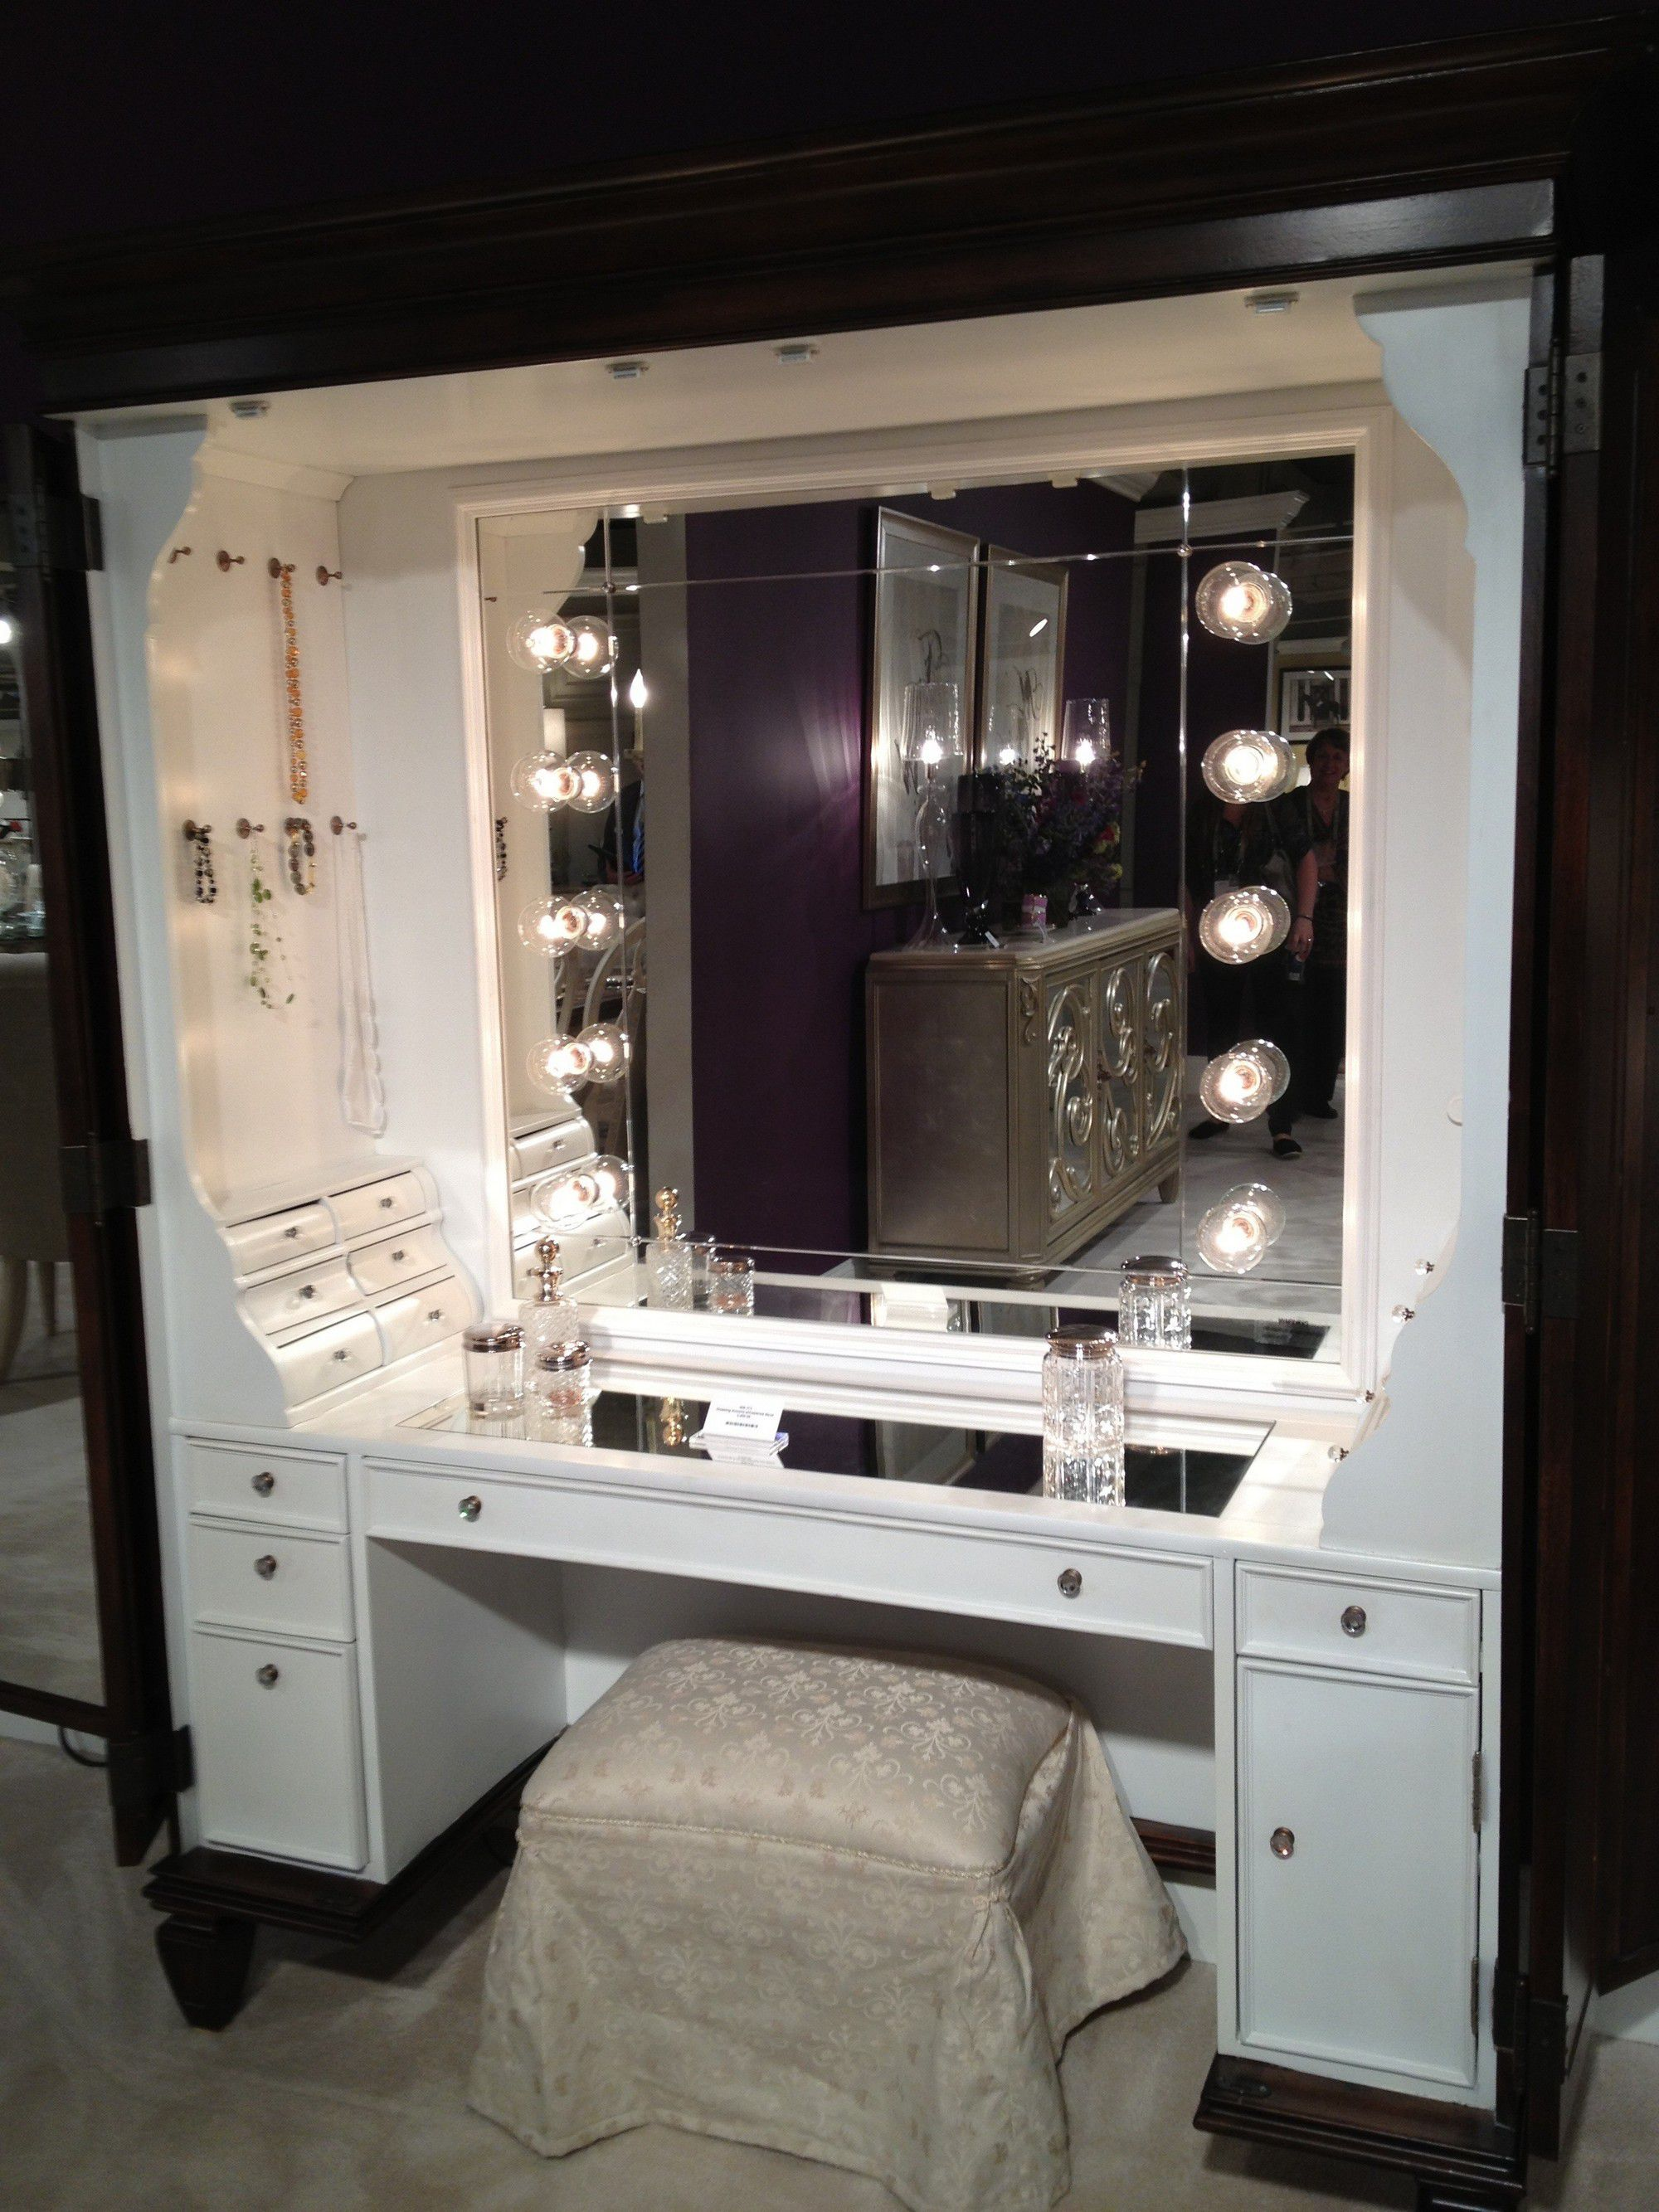 Superb Lighting also Cupboard Plus Stool For Decorating Living Room